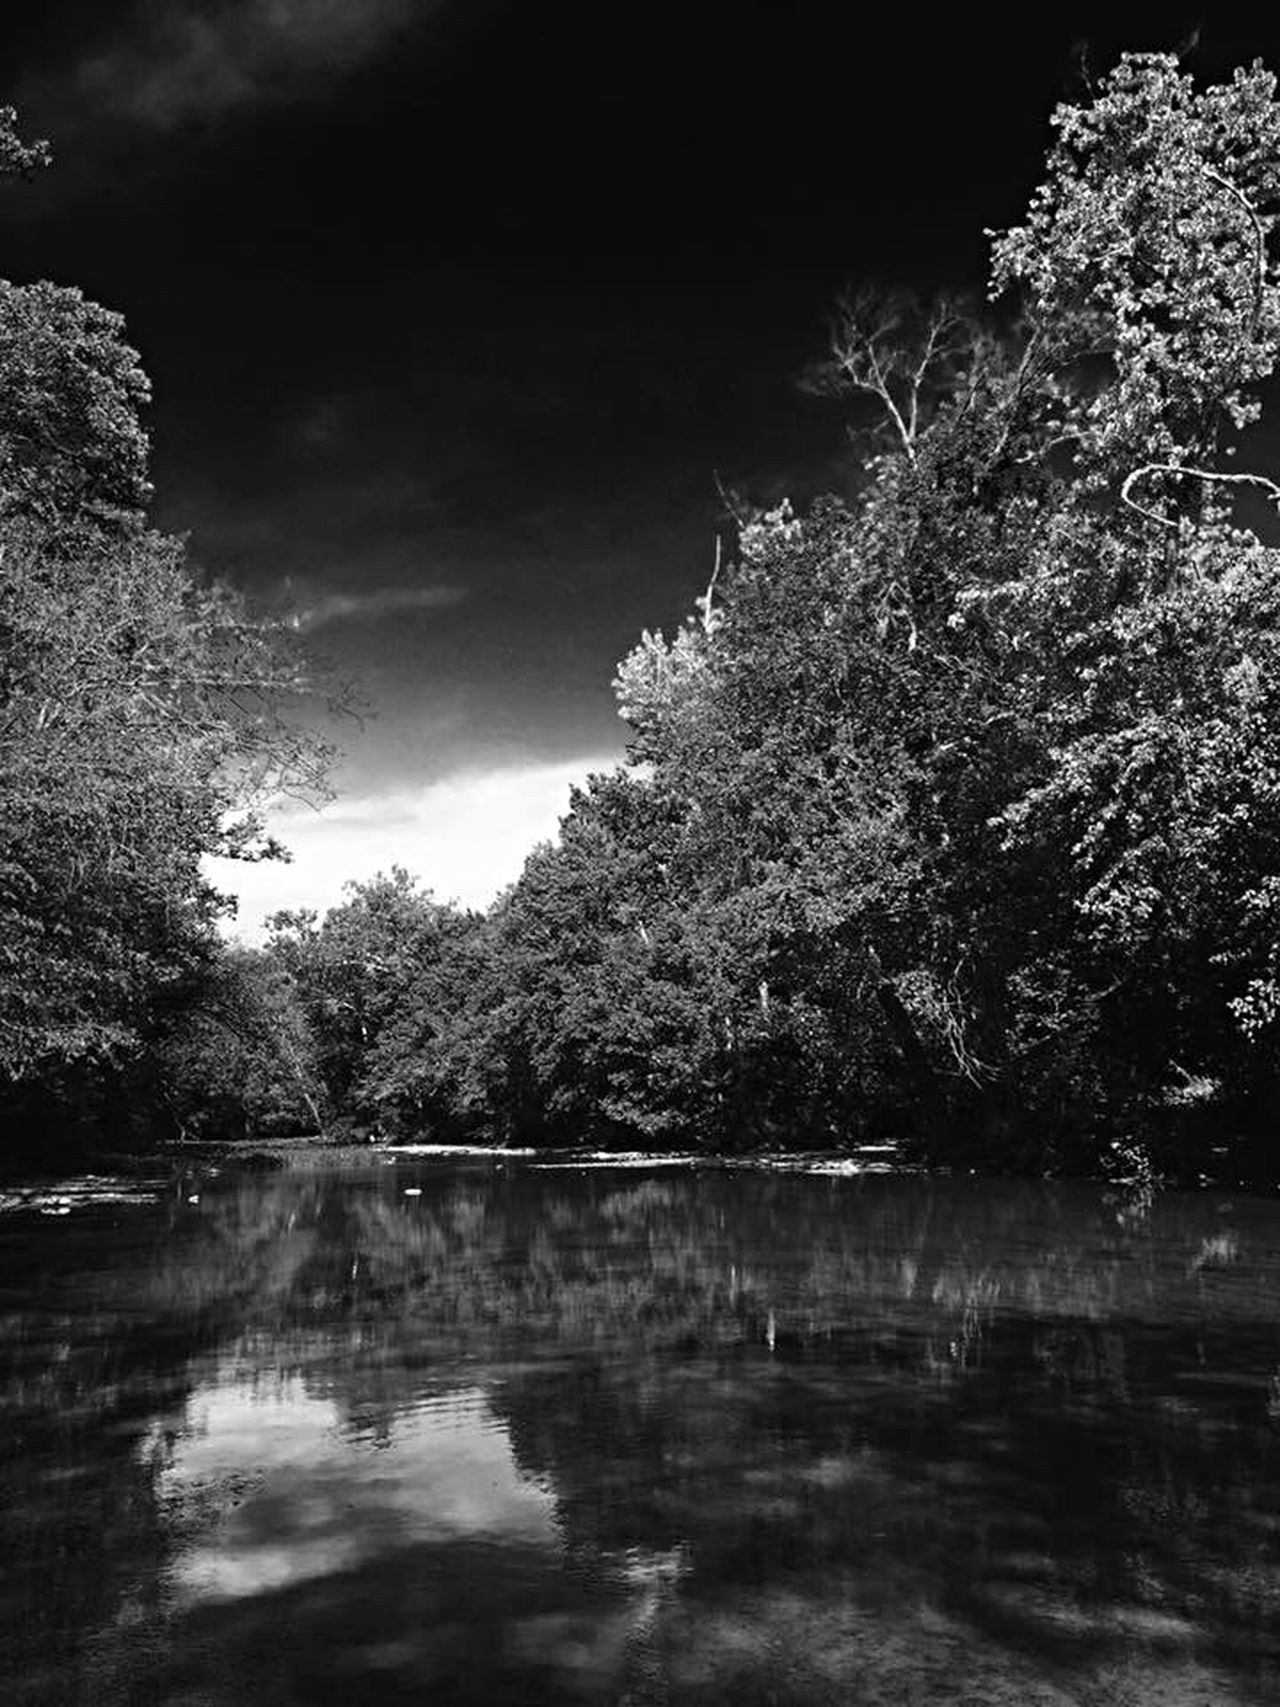 👁🗨 No People Tree Sky Reflection Water Outdoors Nature Tranquility Beauty In Nature Reflection Lake